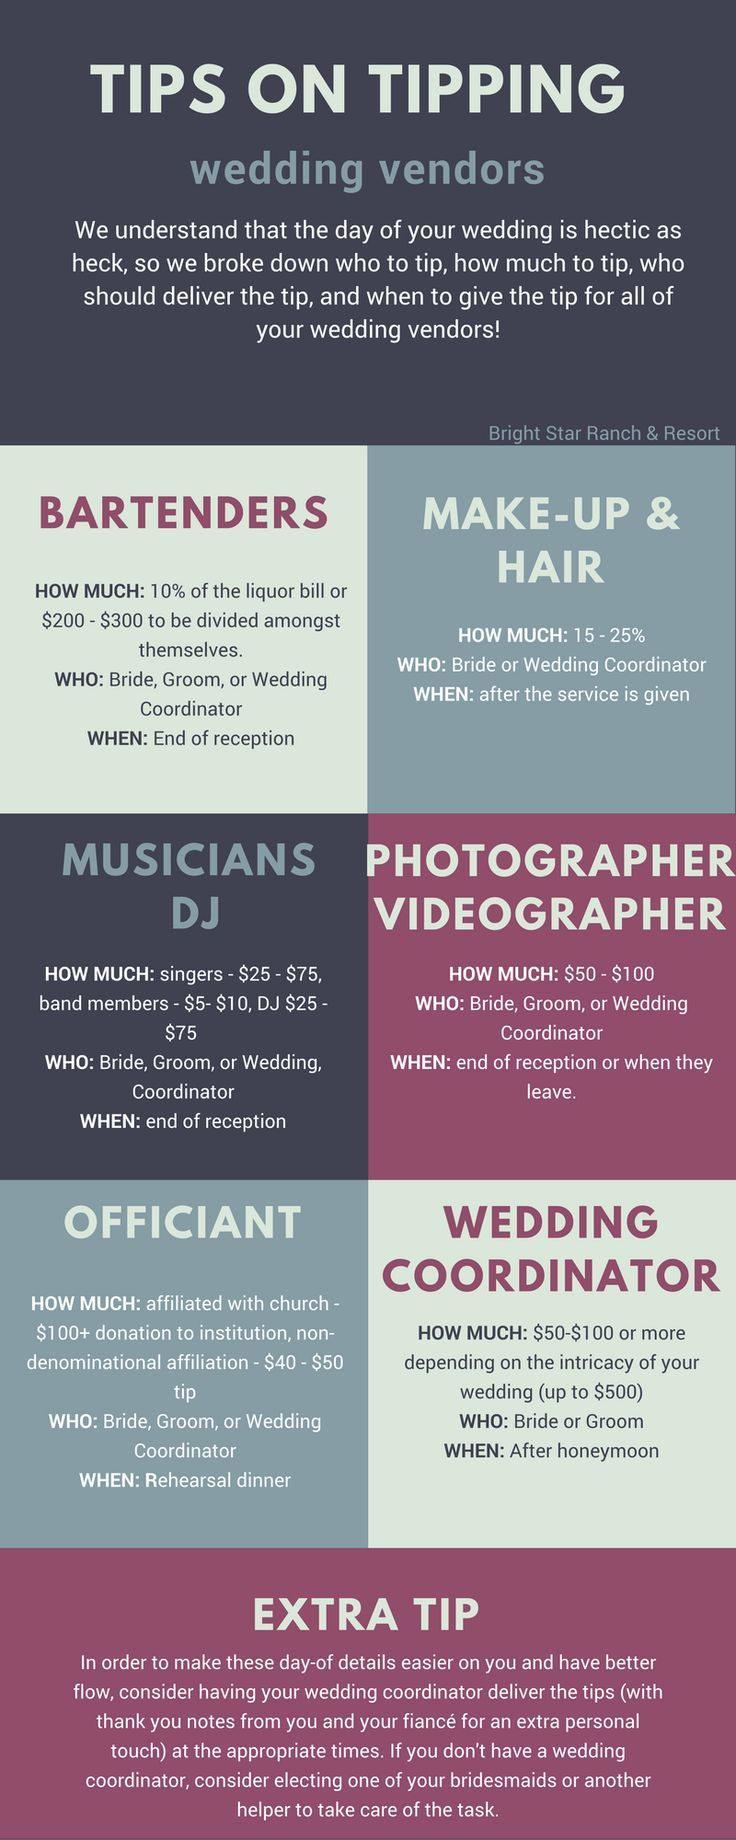 Some of the expected etiquette on tipping wedding vendors!